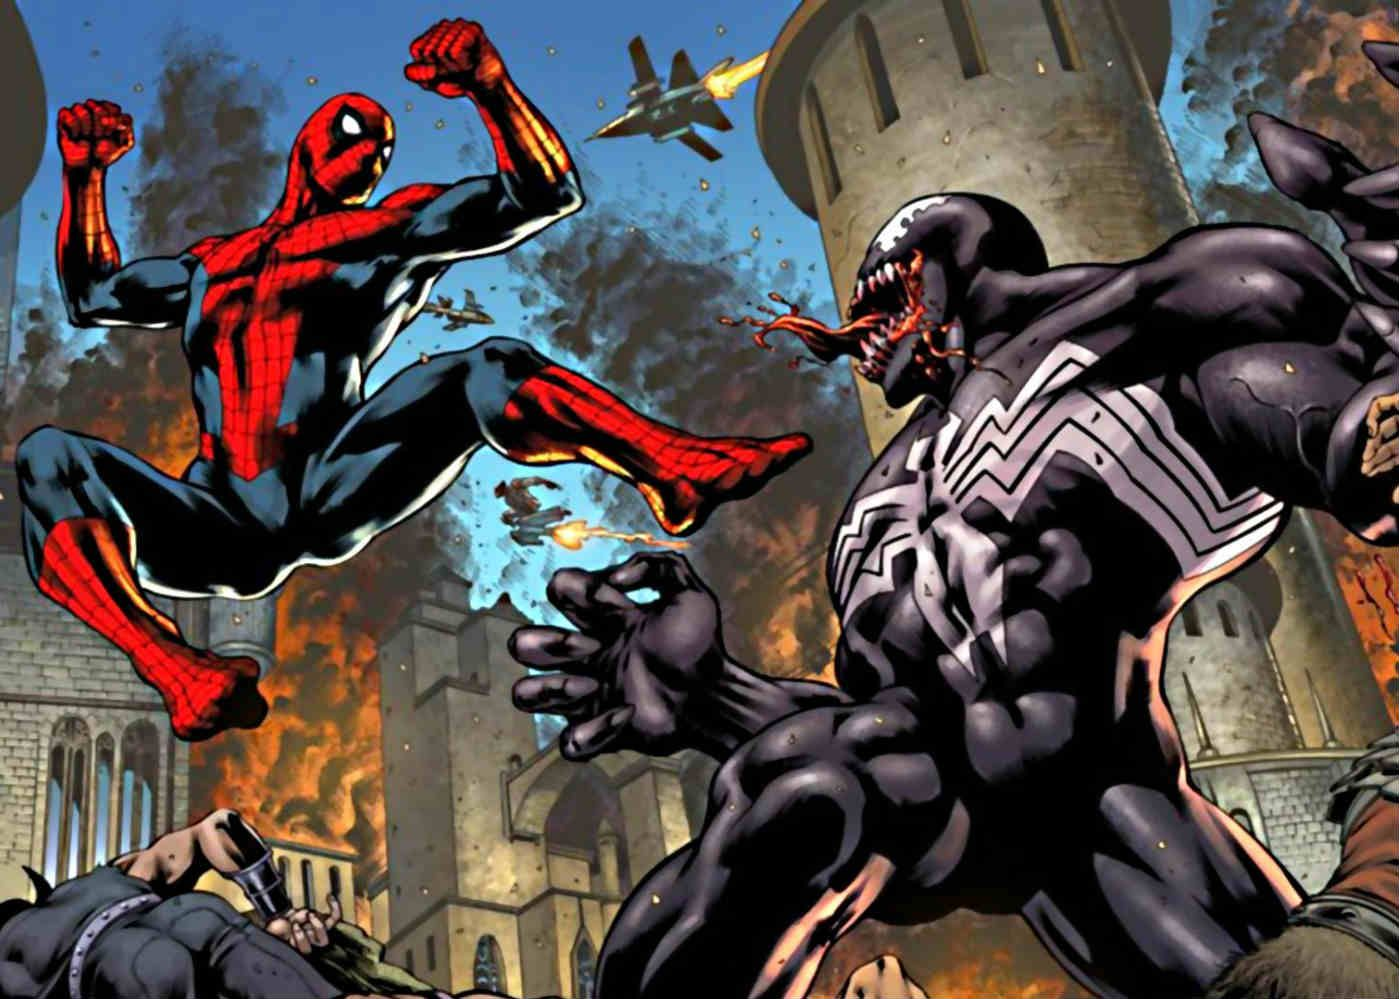 Sony has 'Big Plans' for Tom Holland's Spider-Man to Join Their Marvel Universe